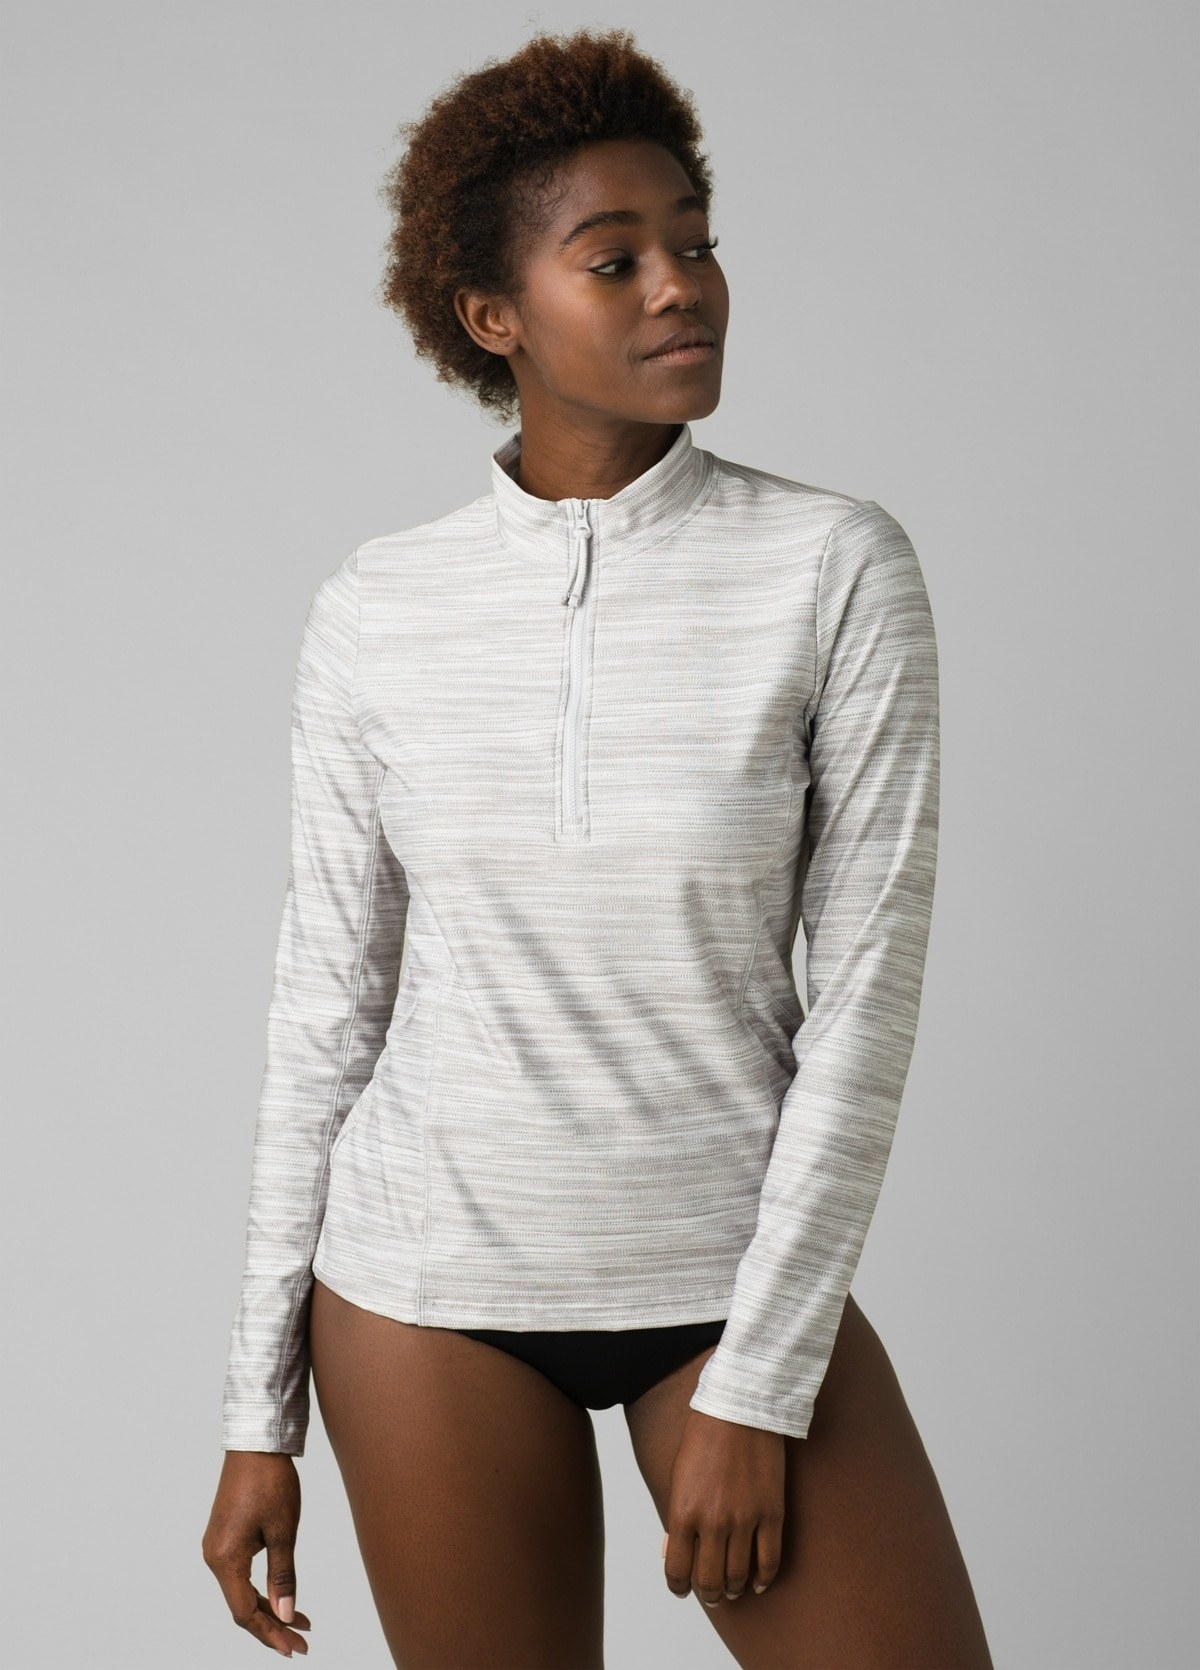 model in gray and white irregular stripe long-sleeve top with a quarter zip